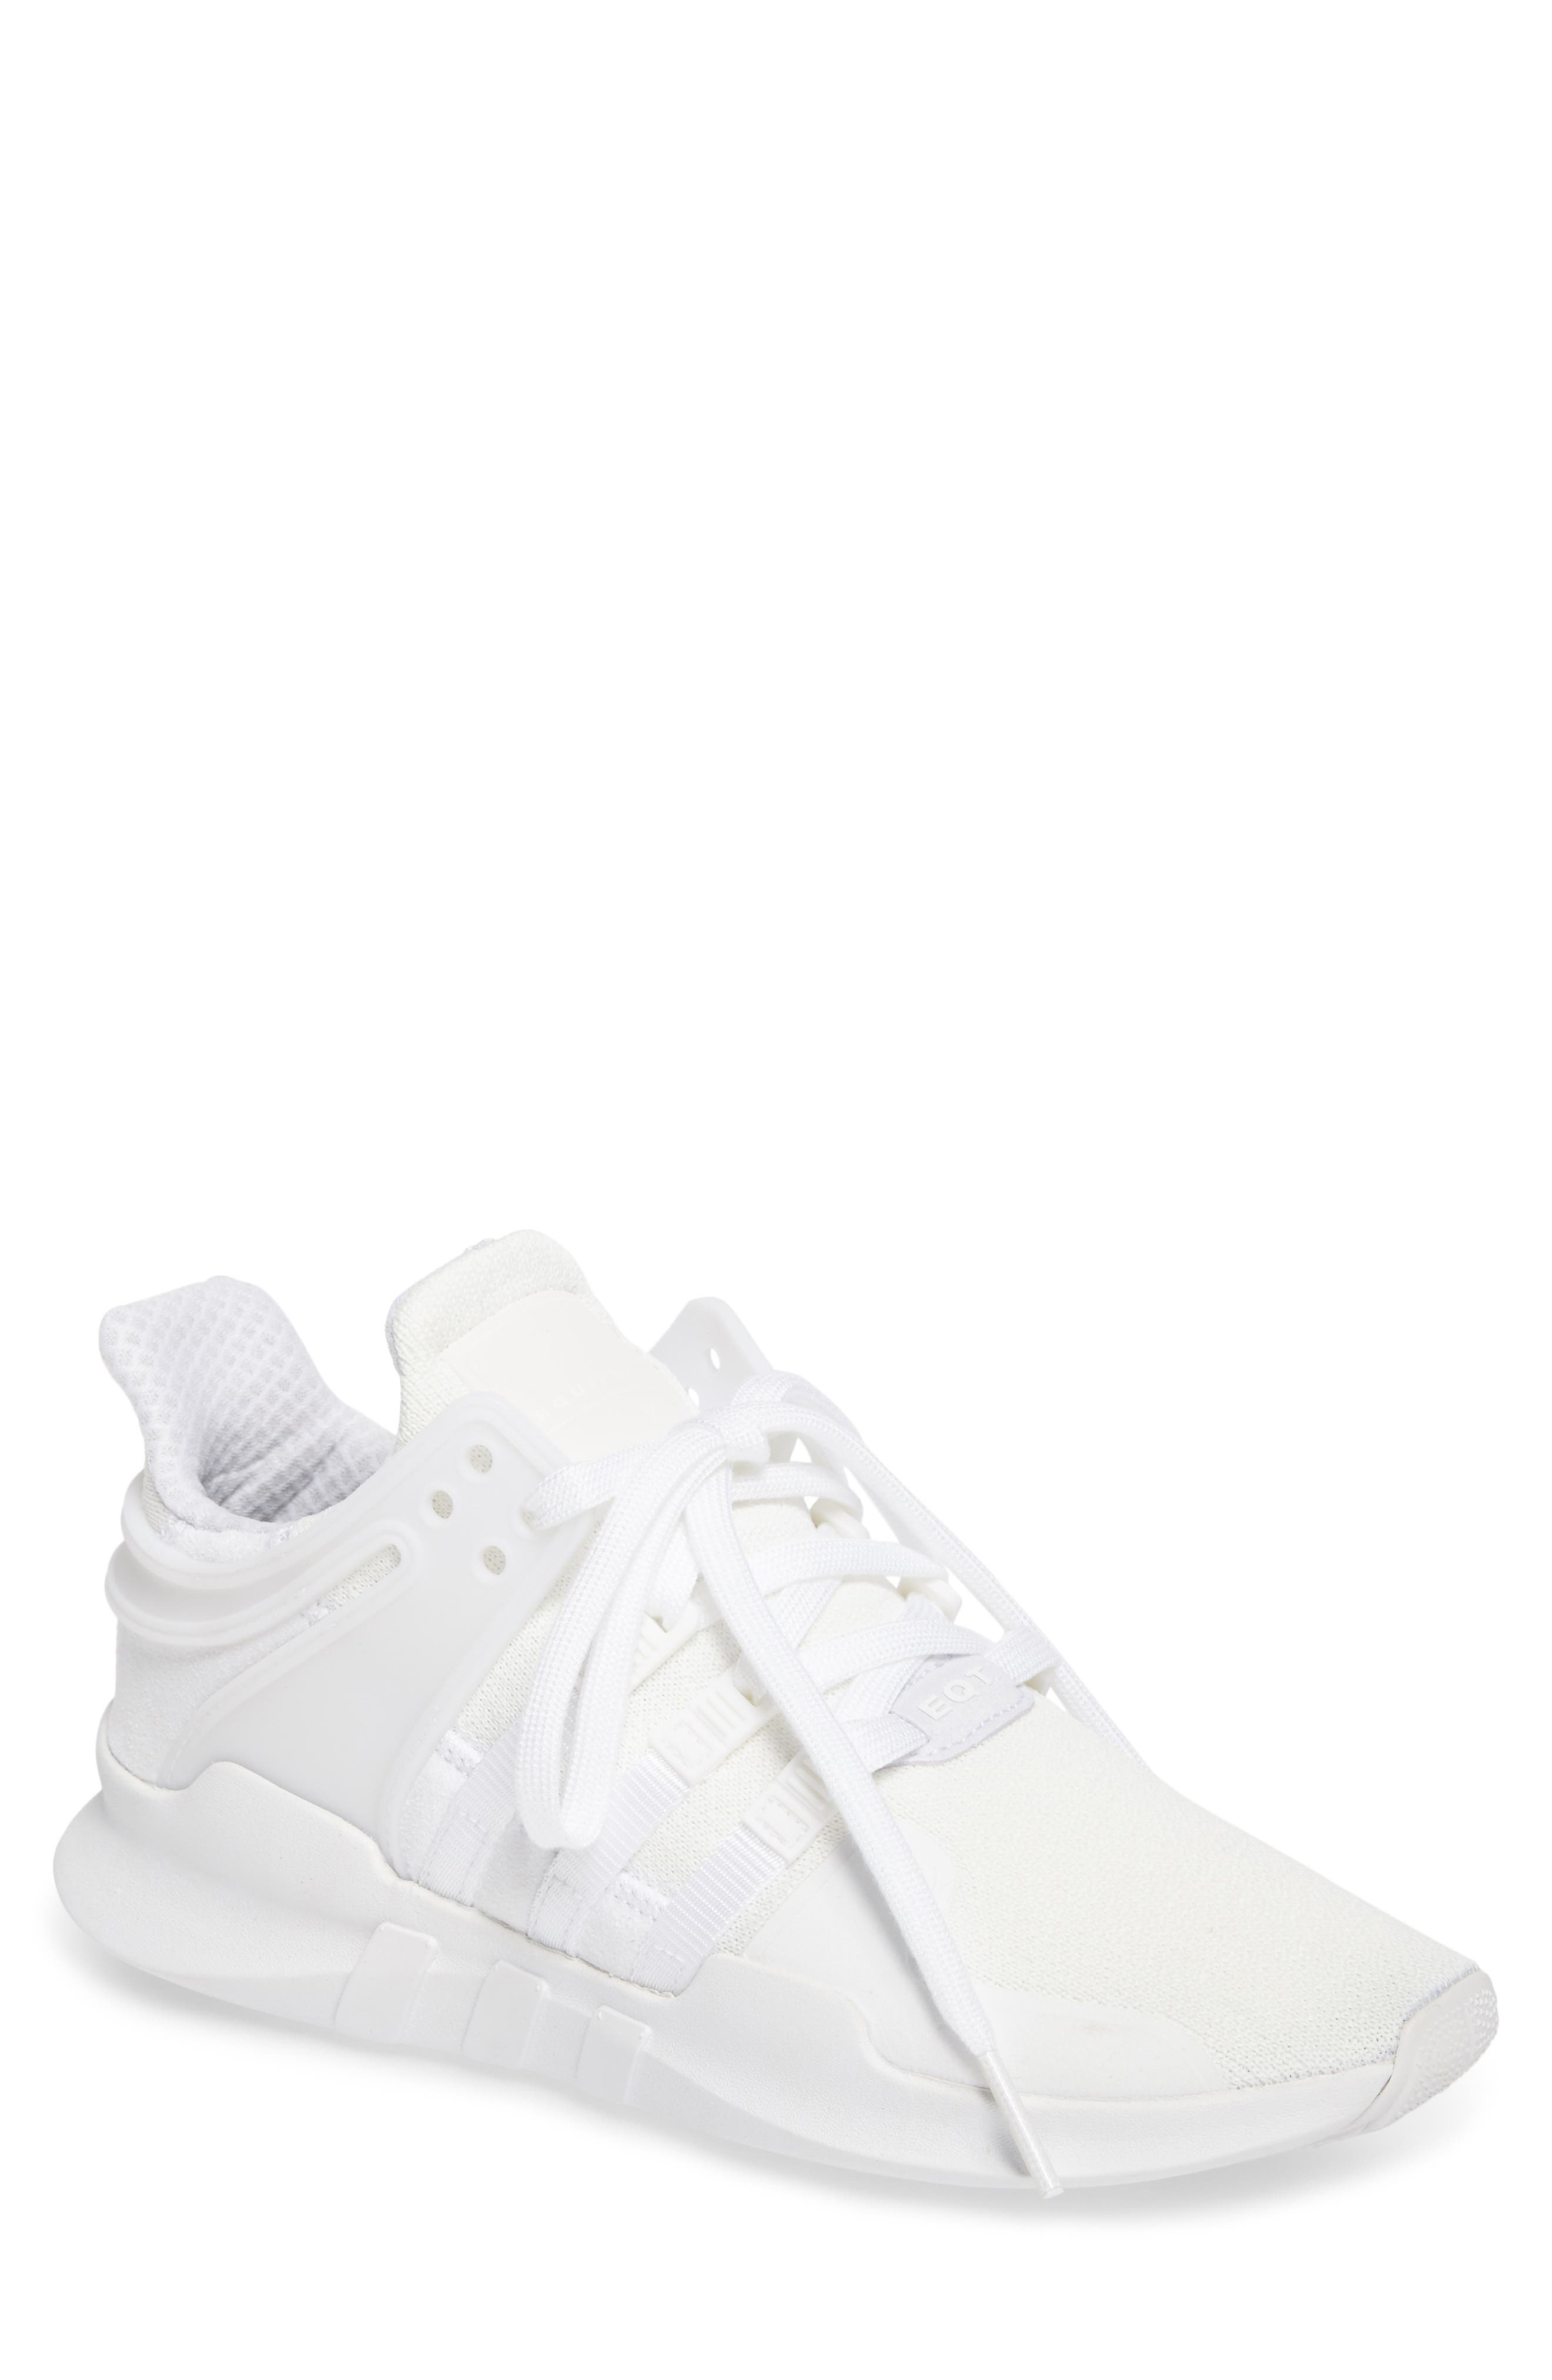 adidas EQT Support Adv Sneaker (Men)